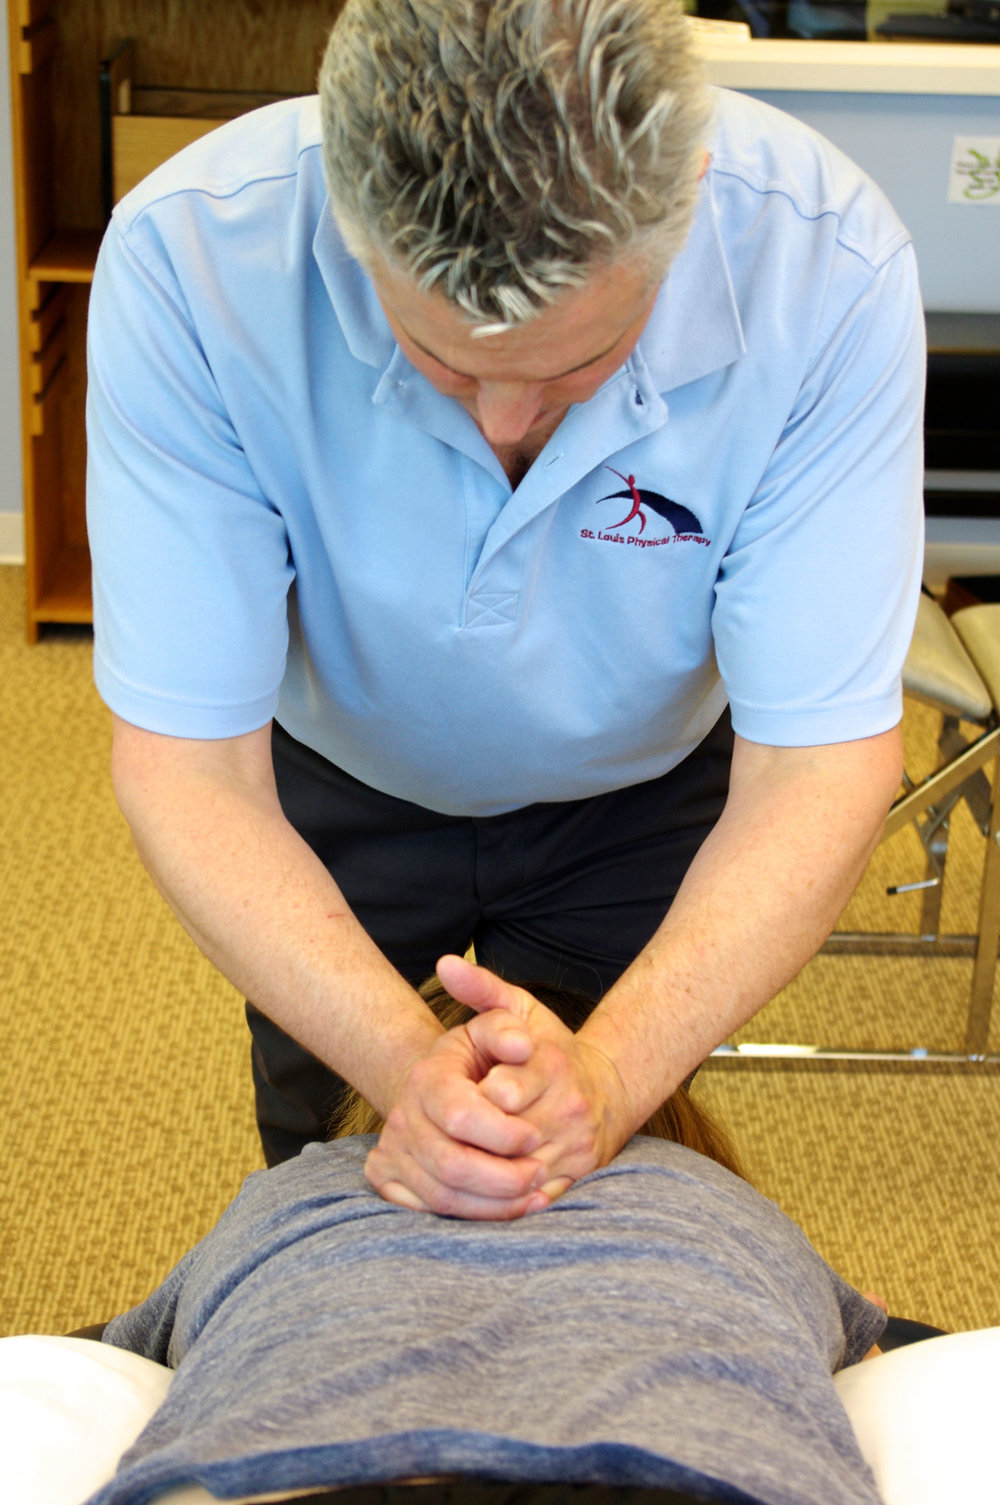 Services - Expertise covers: Standards of Care in Physical Therapy, billing and coding practices, scope of practice, therapeutic exercise, manual therapy, use of modalities, and more.